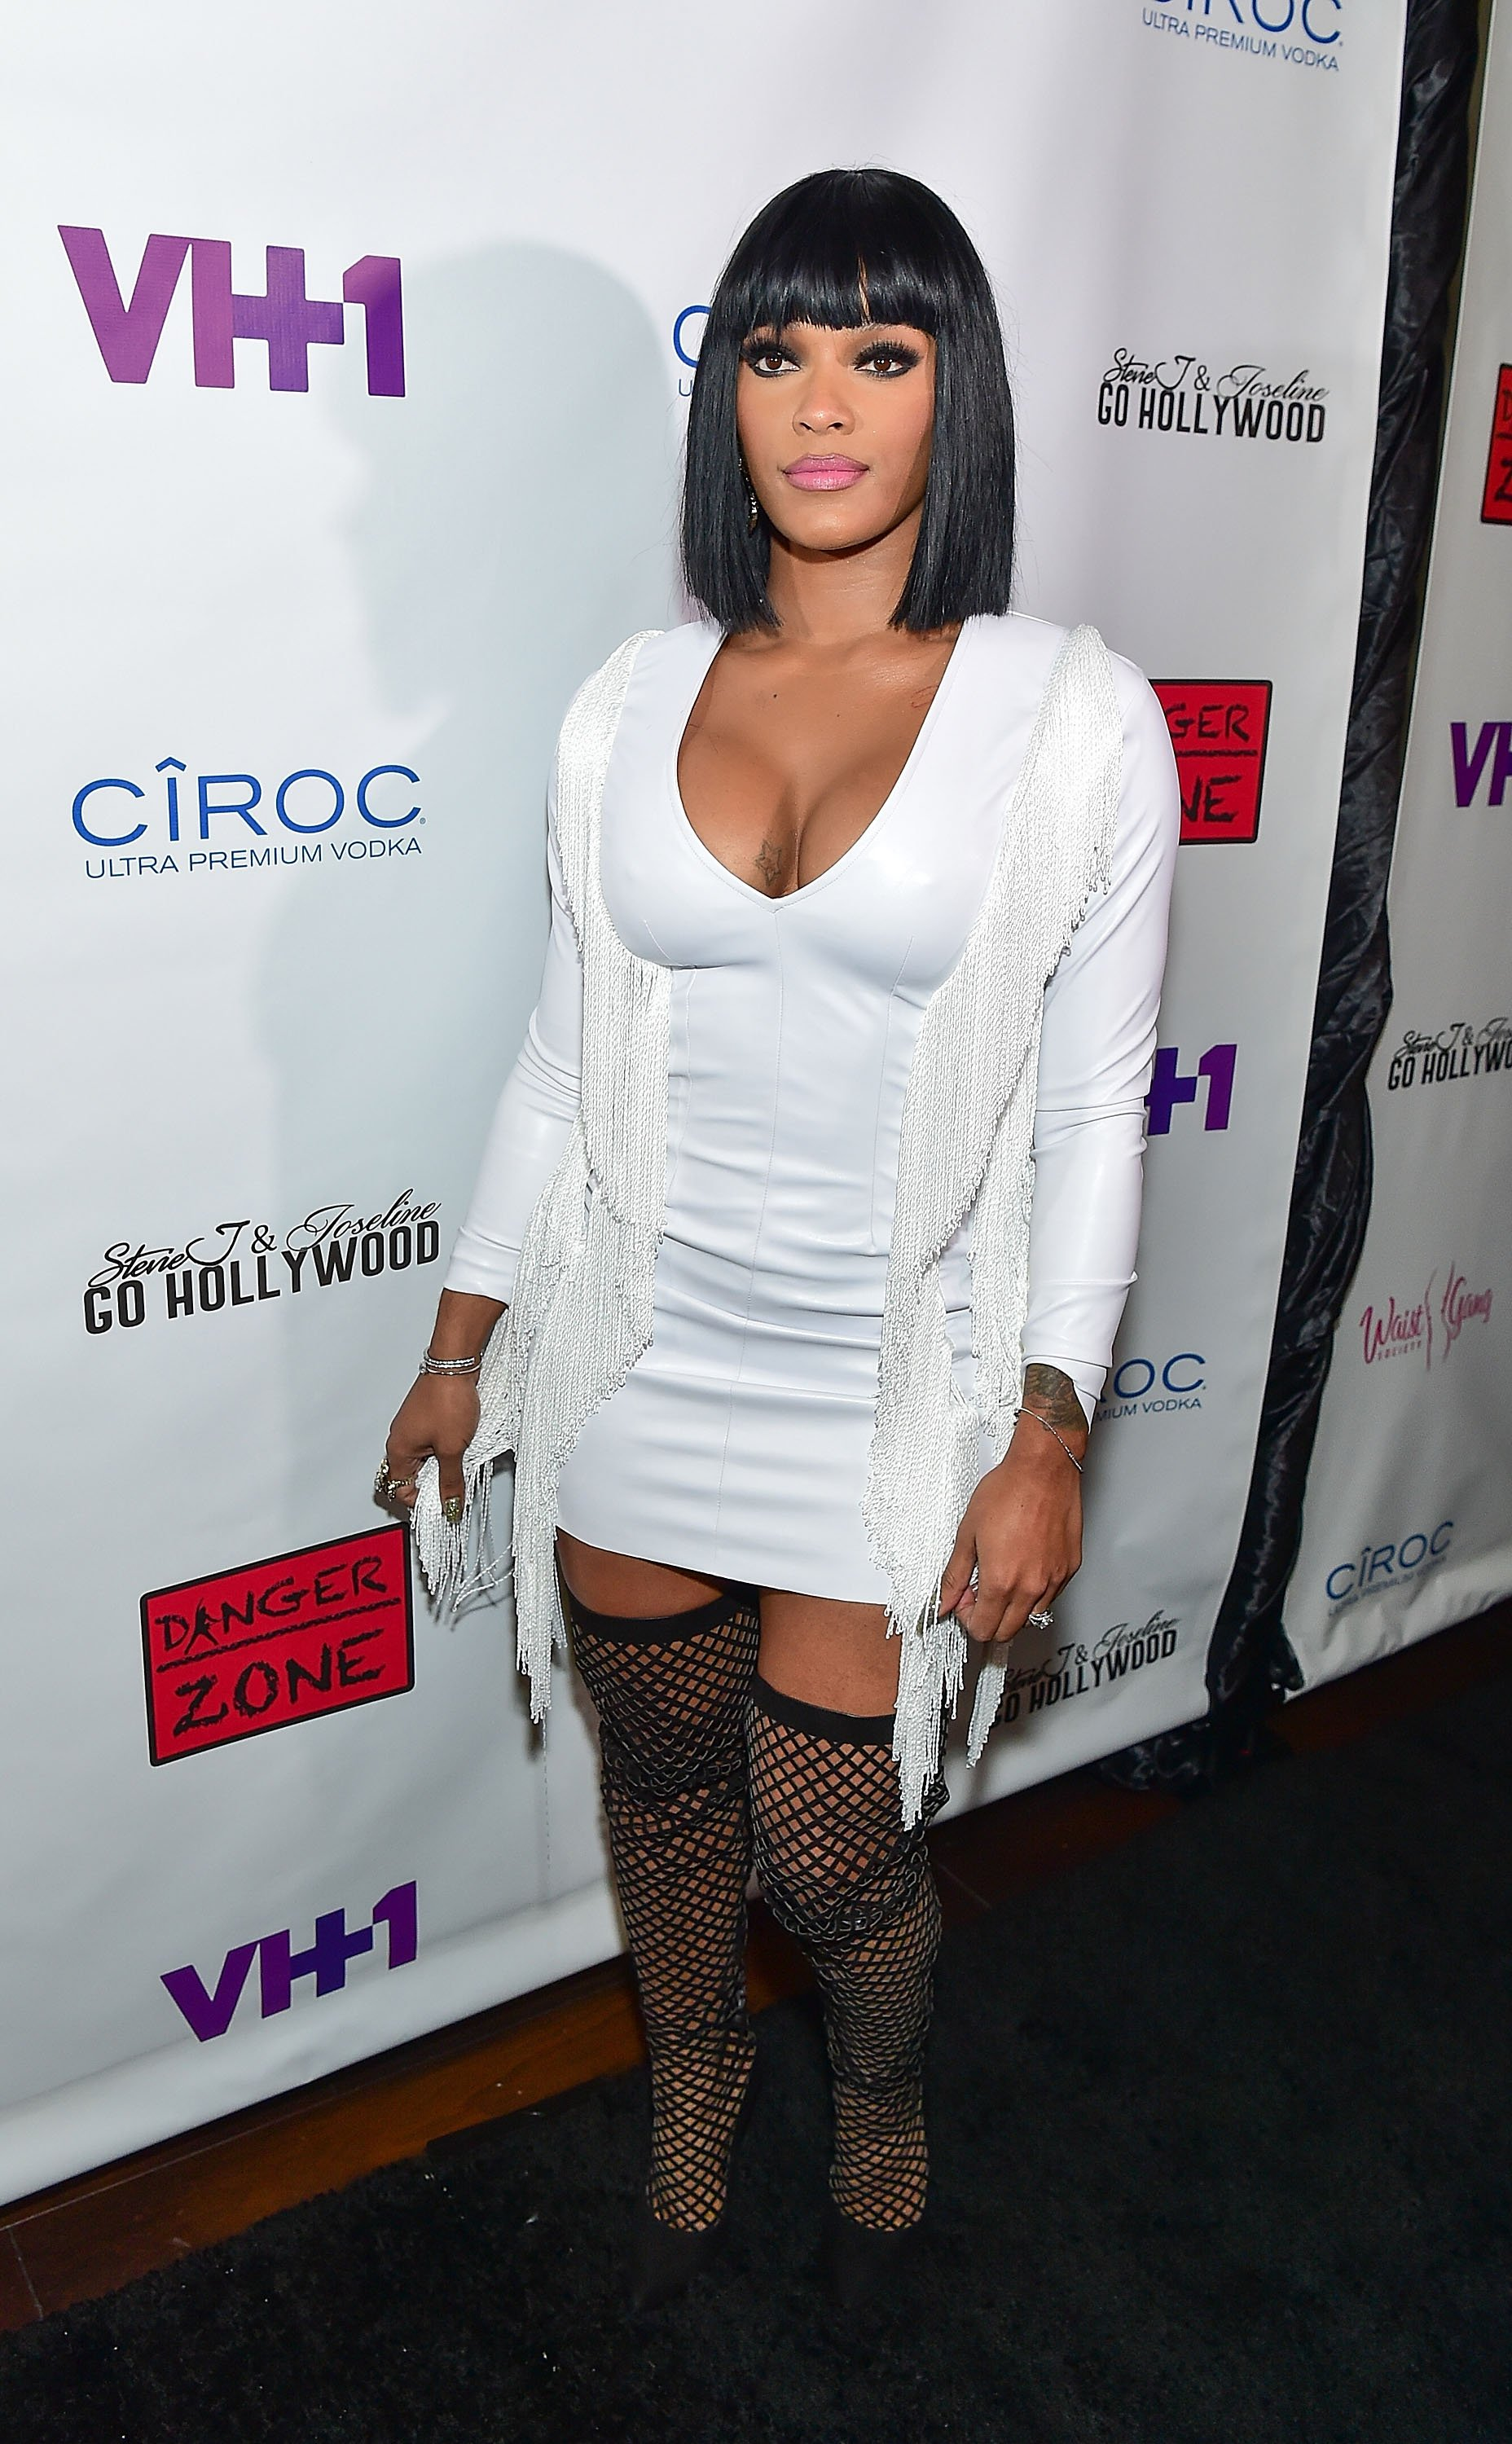 Joseline Hernandez at a VH1 event | Photo: Getty Images